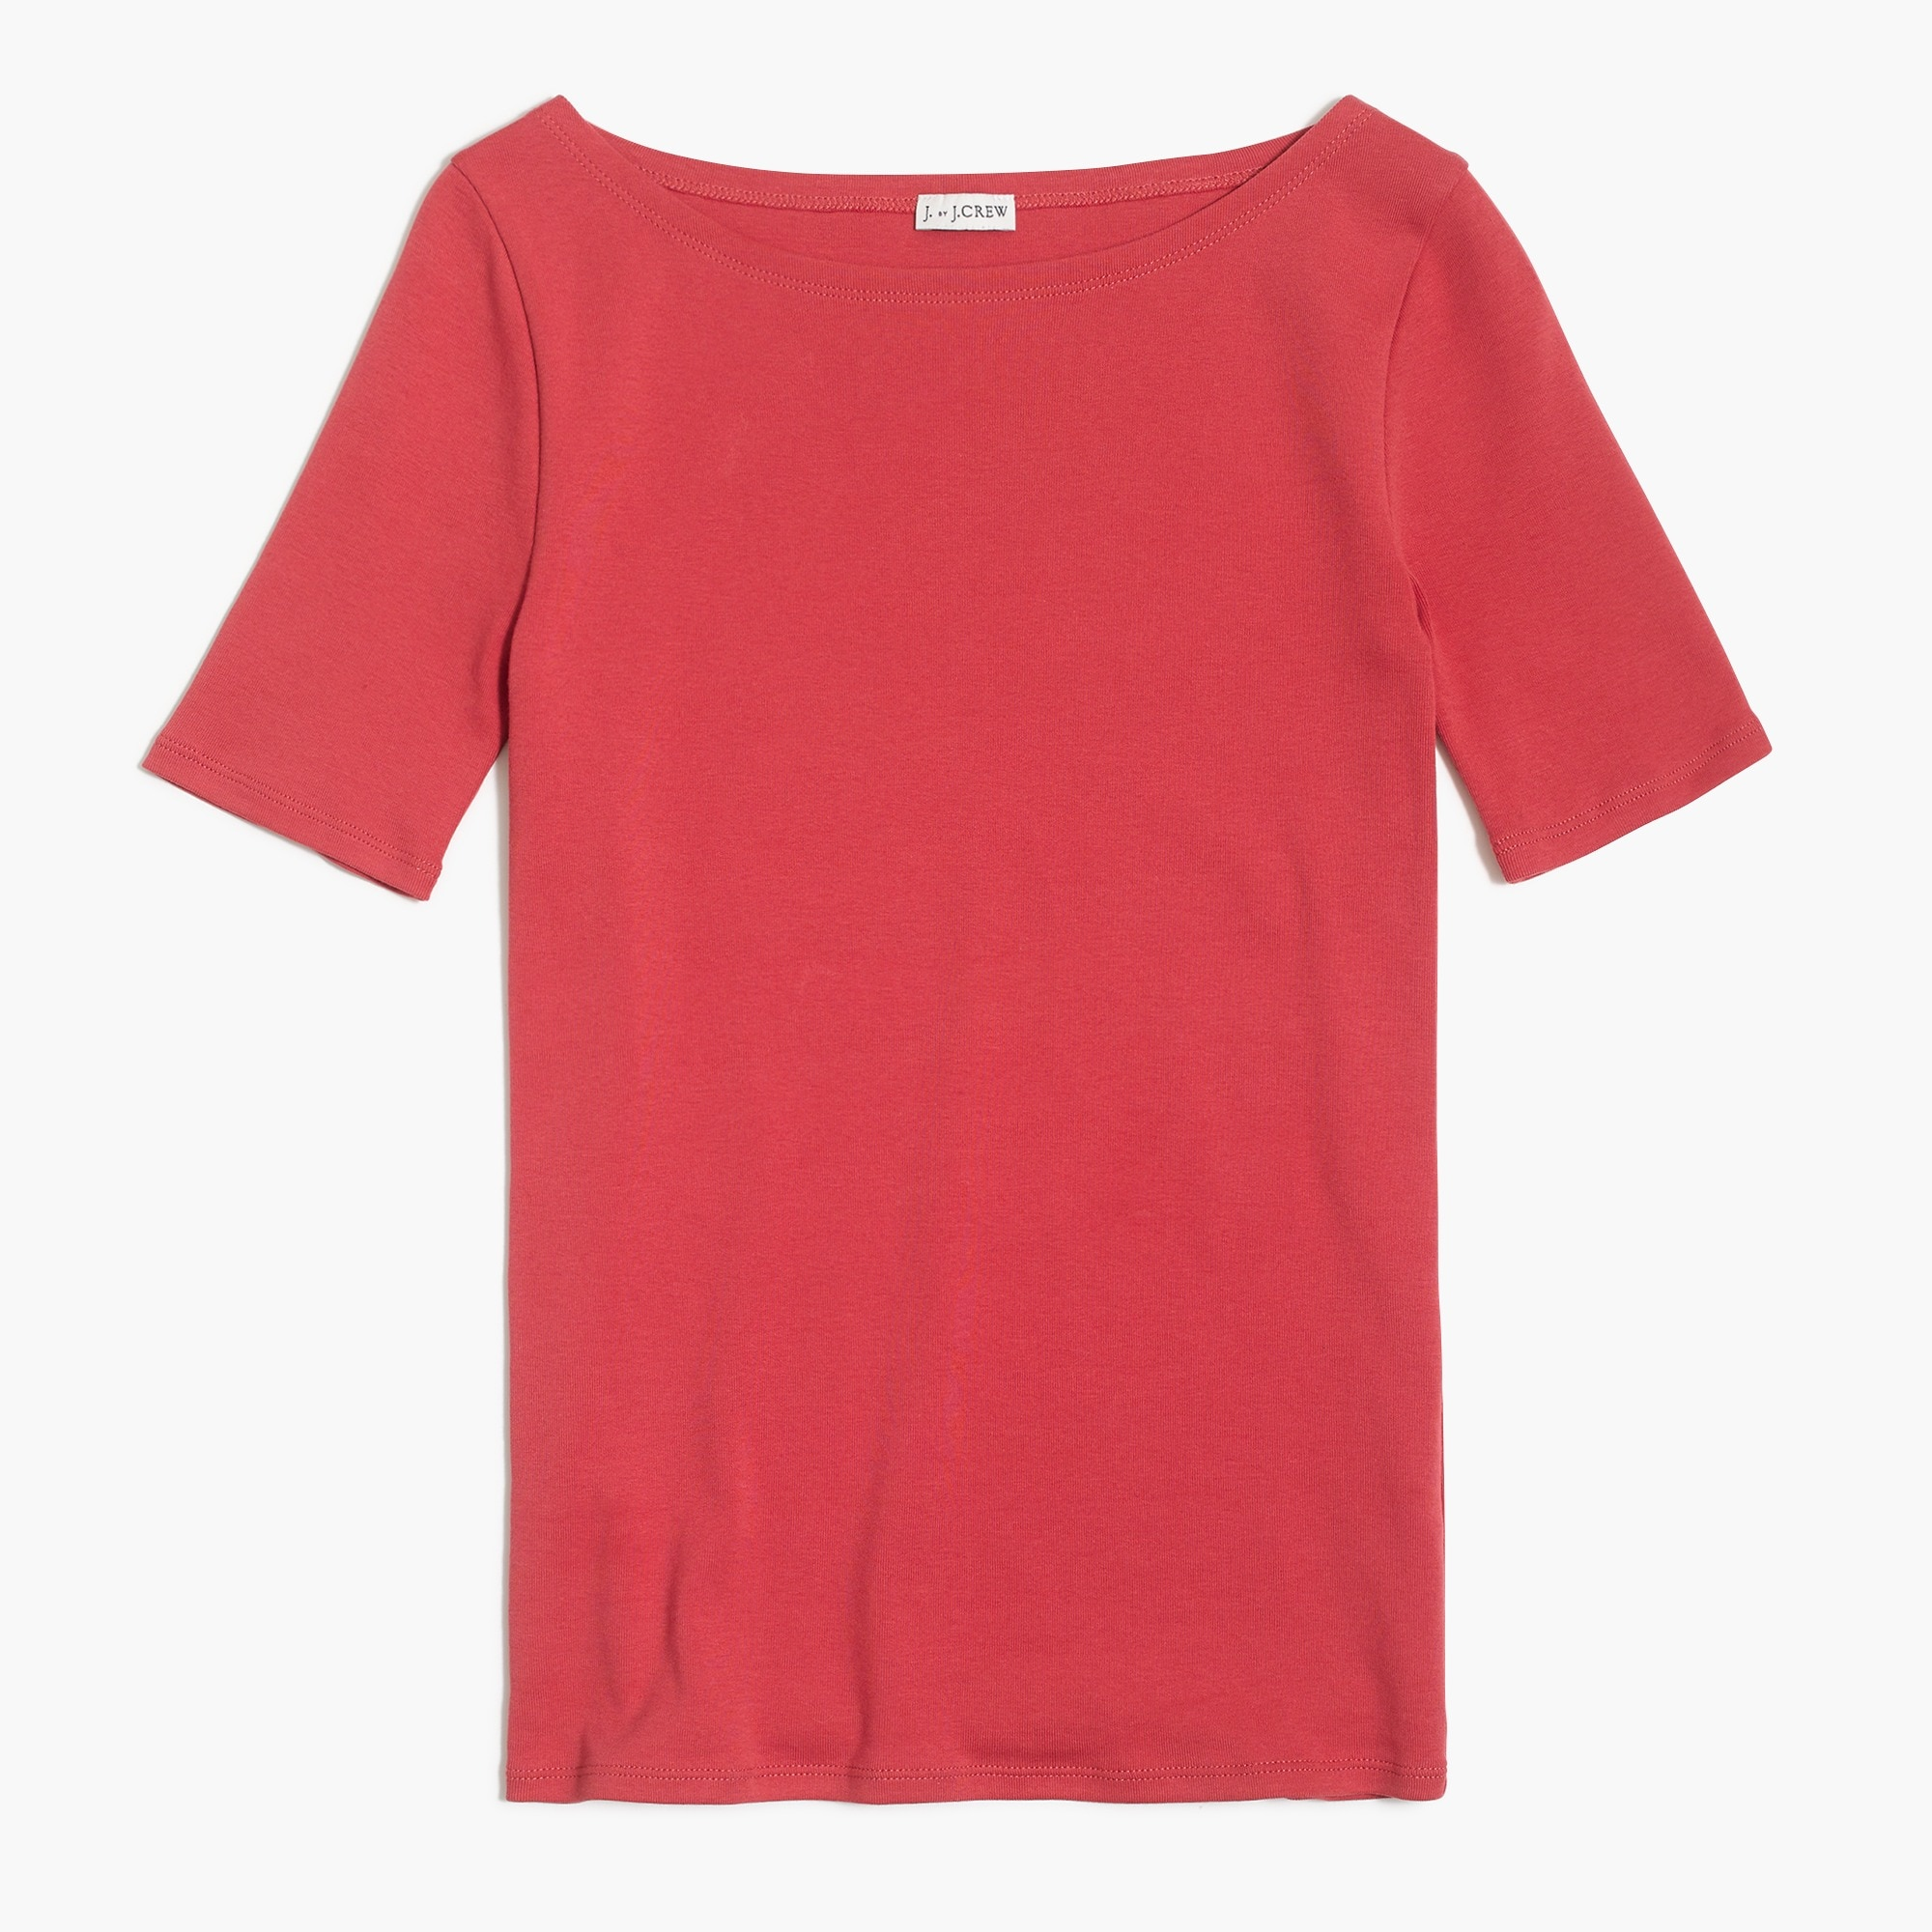 Perfect-fit open-neck T-shirt